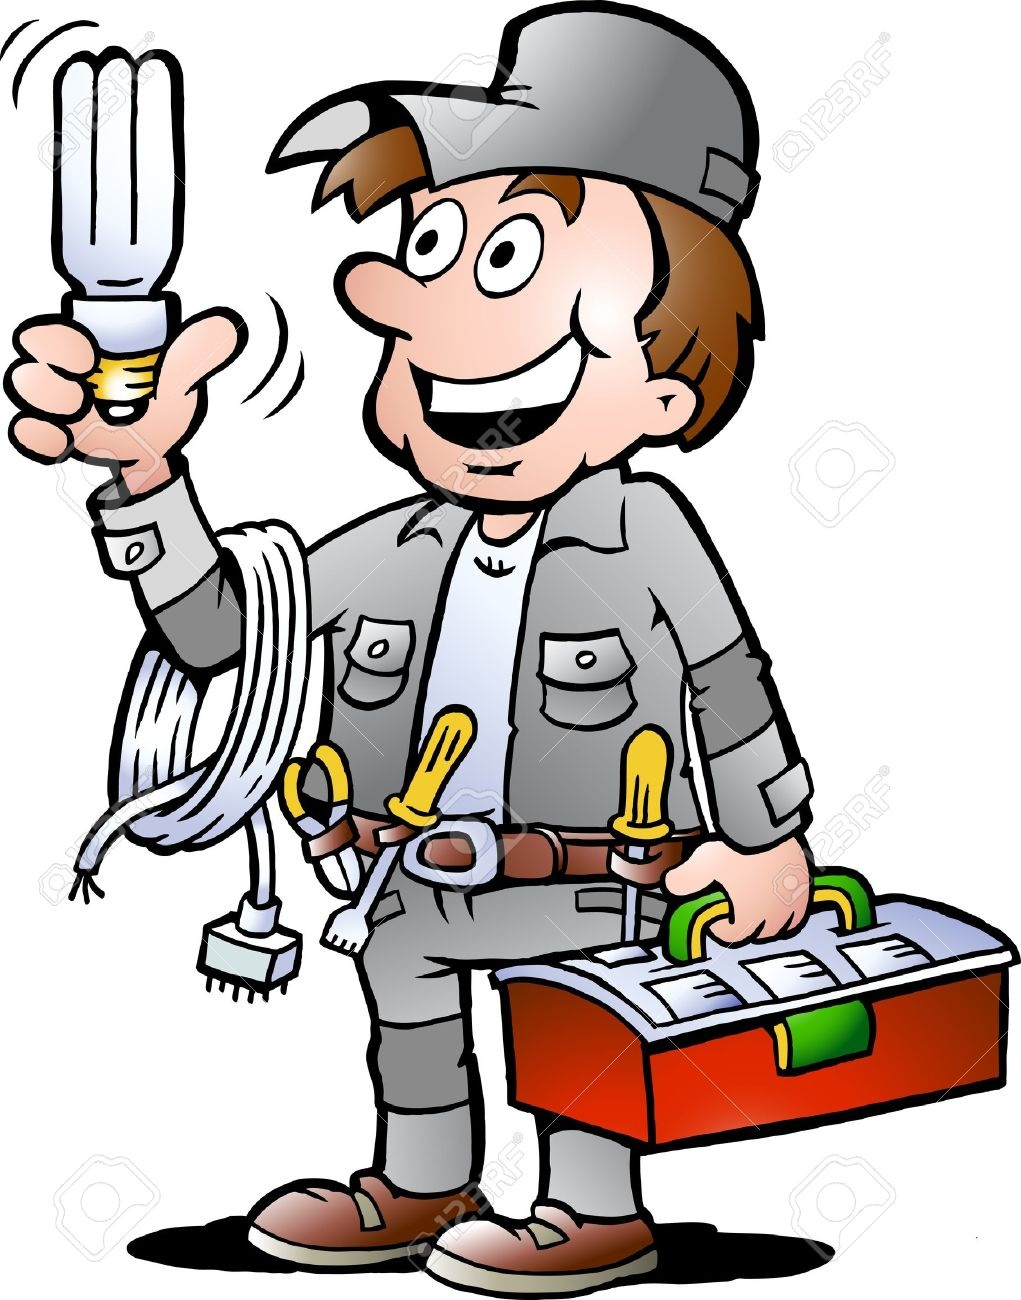 Electrician clipart image image freeuse download Free electrician clipart 6 » Clipart Station image freeuse download